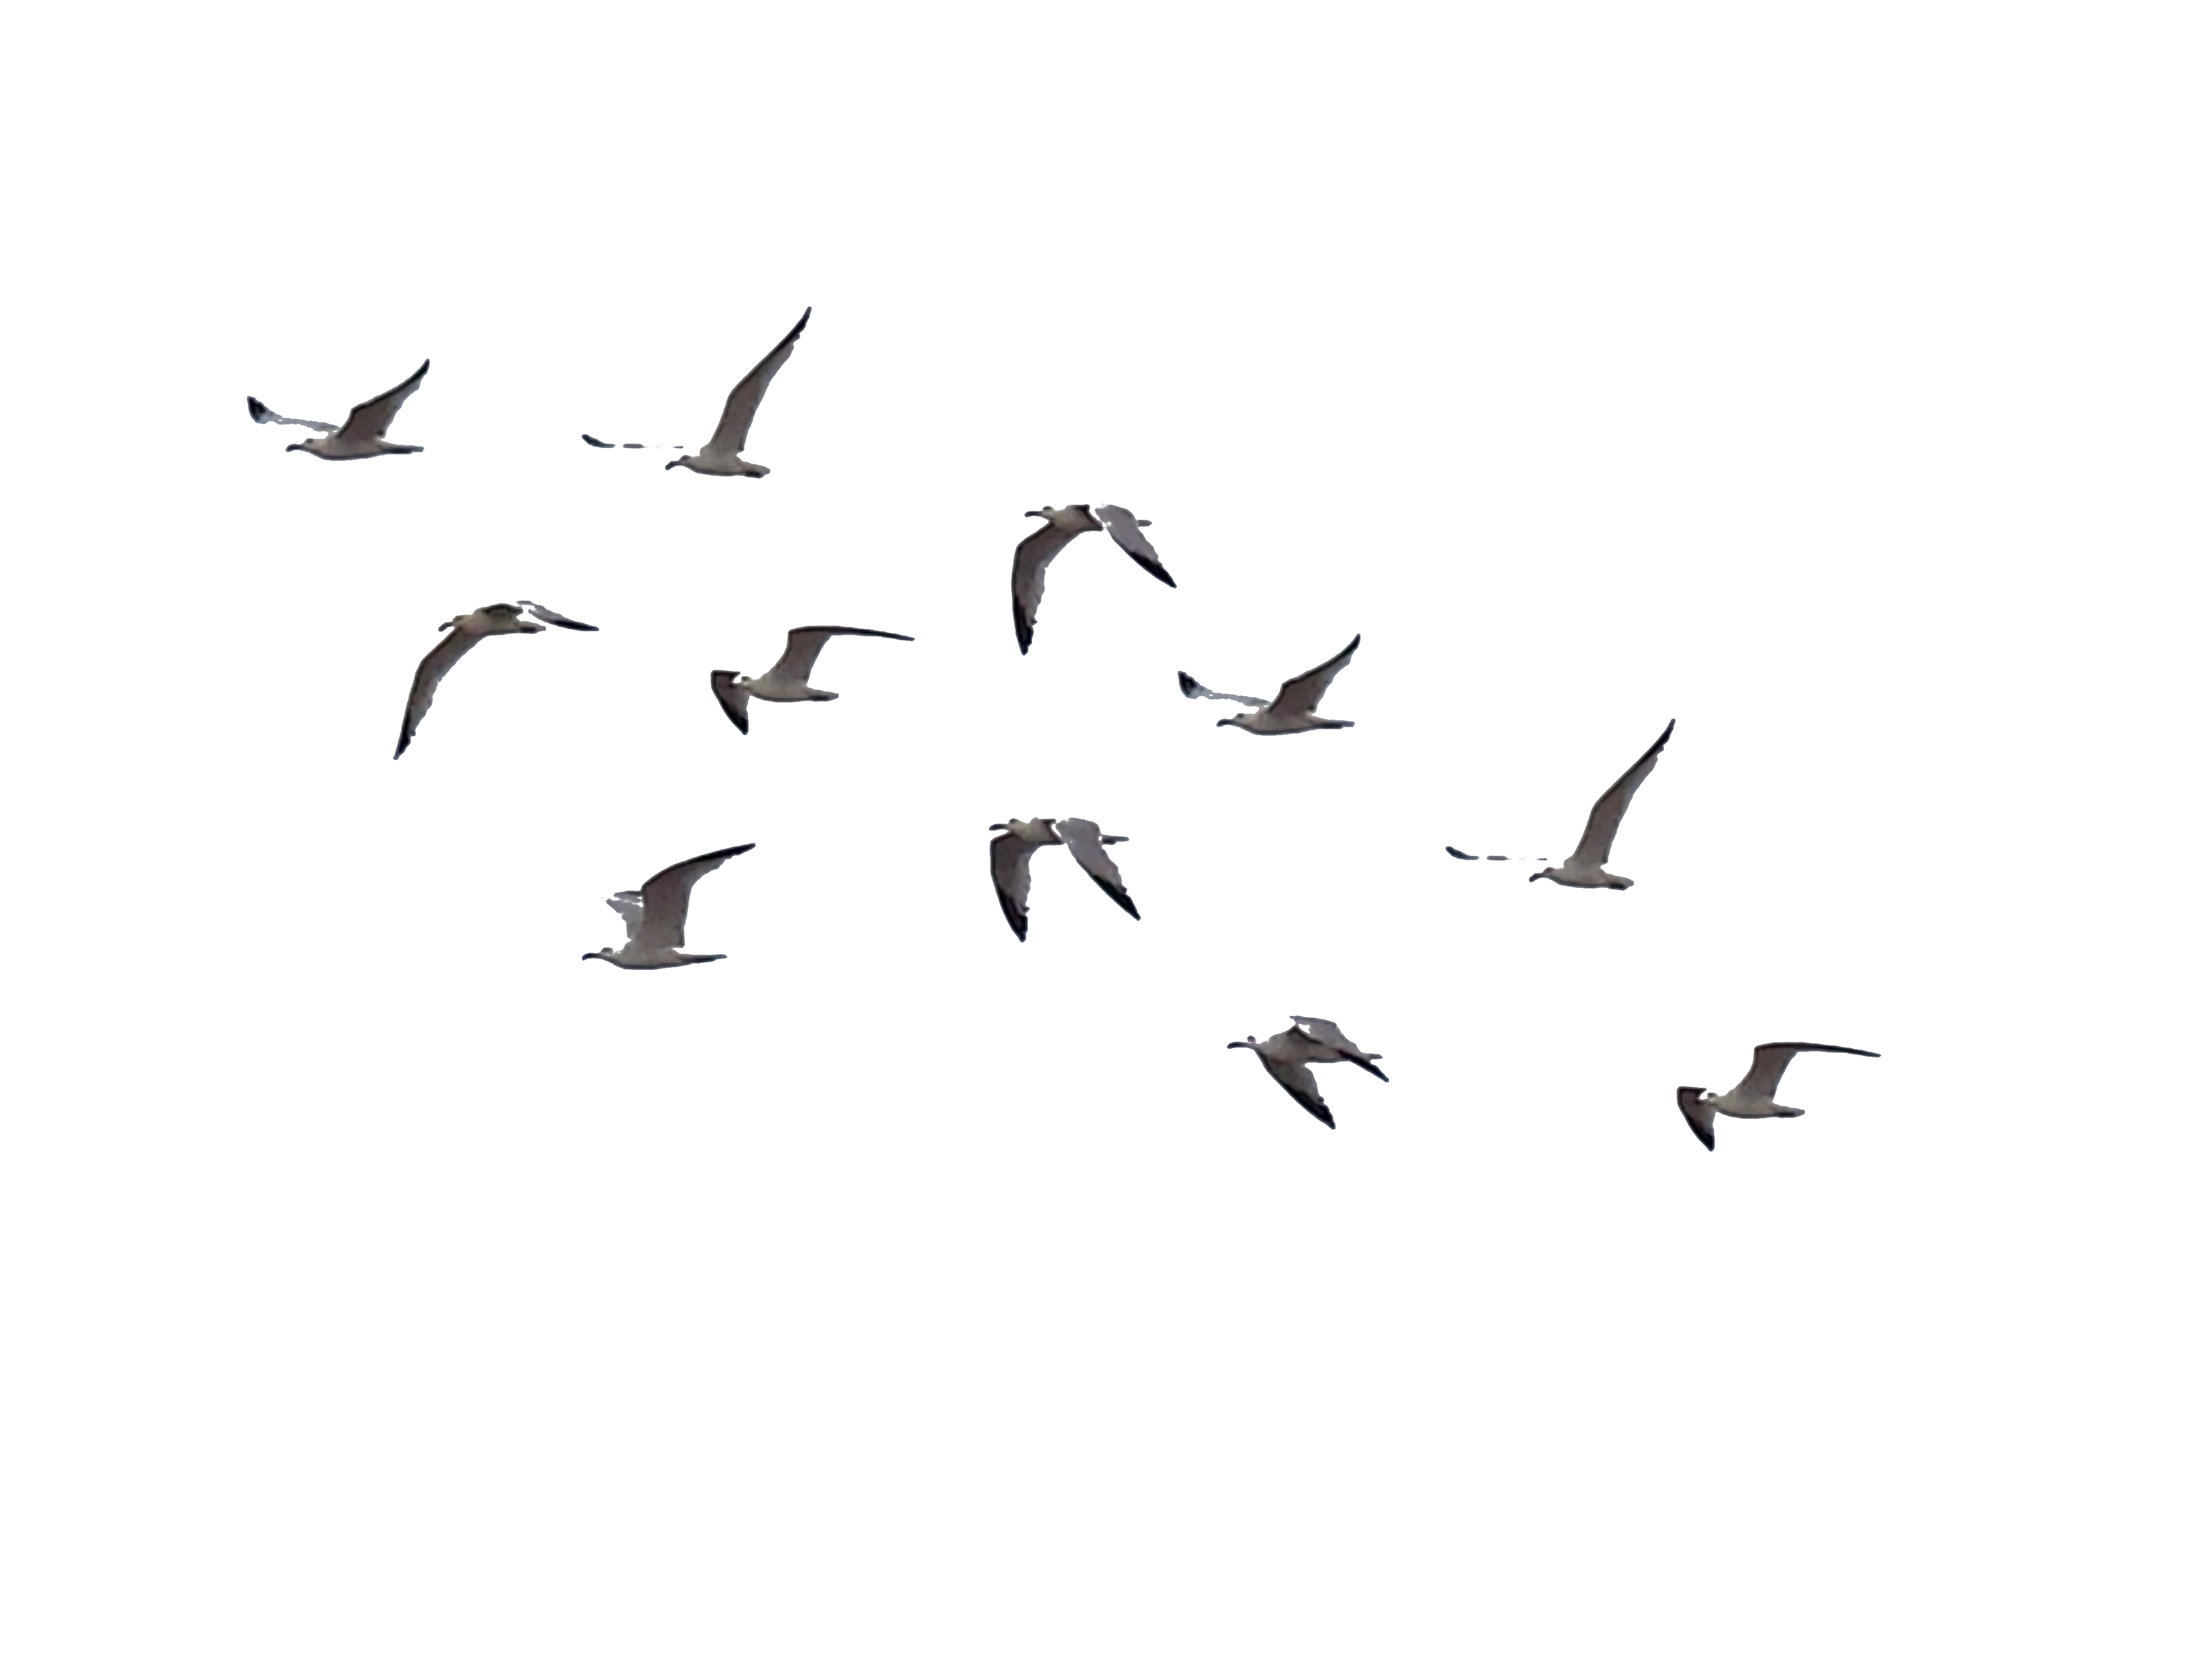 Ocean Birds Image PNG Download Free PNG Image